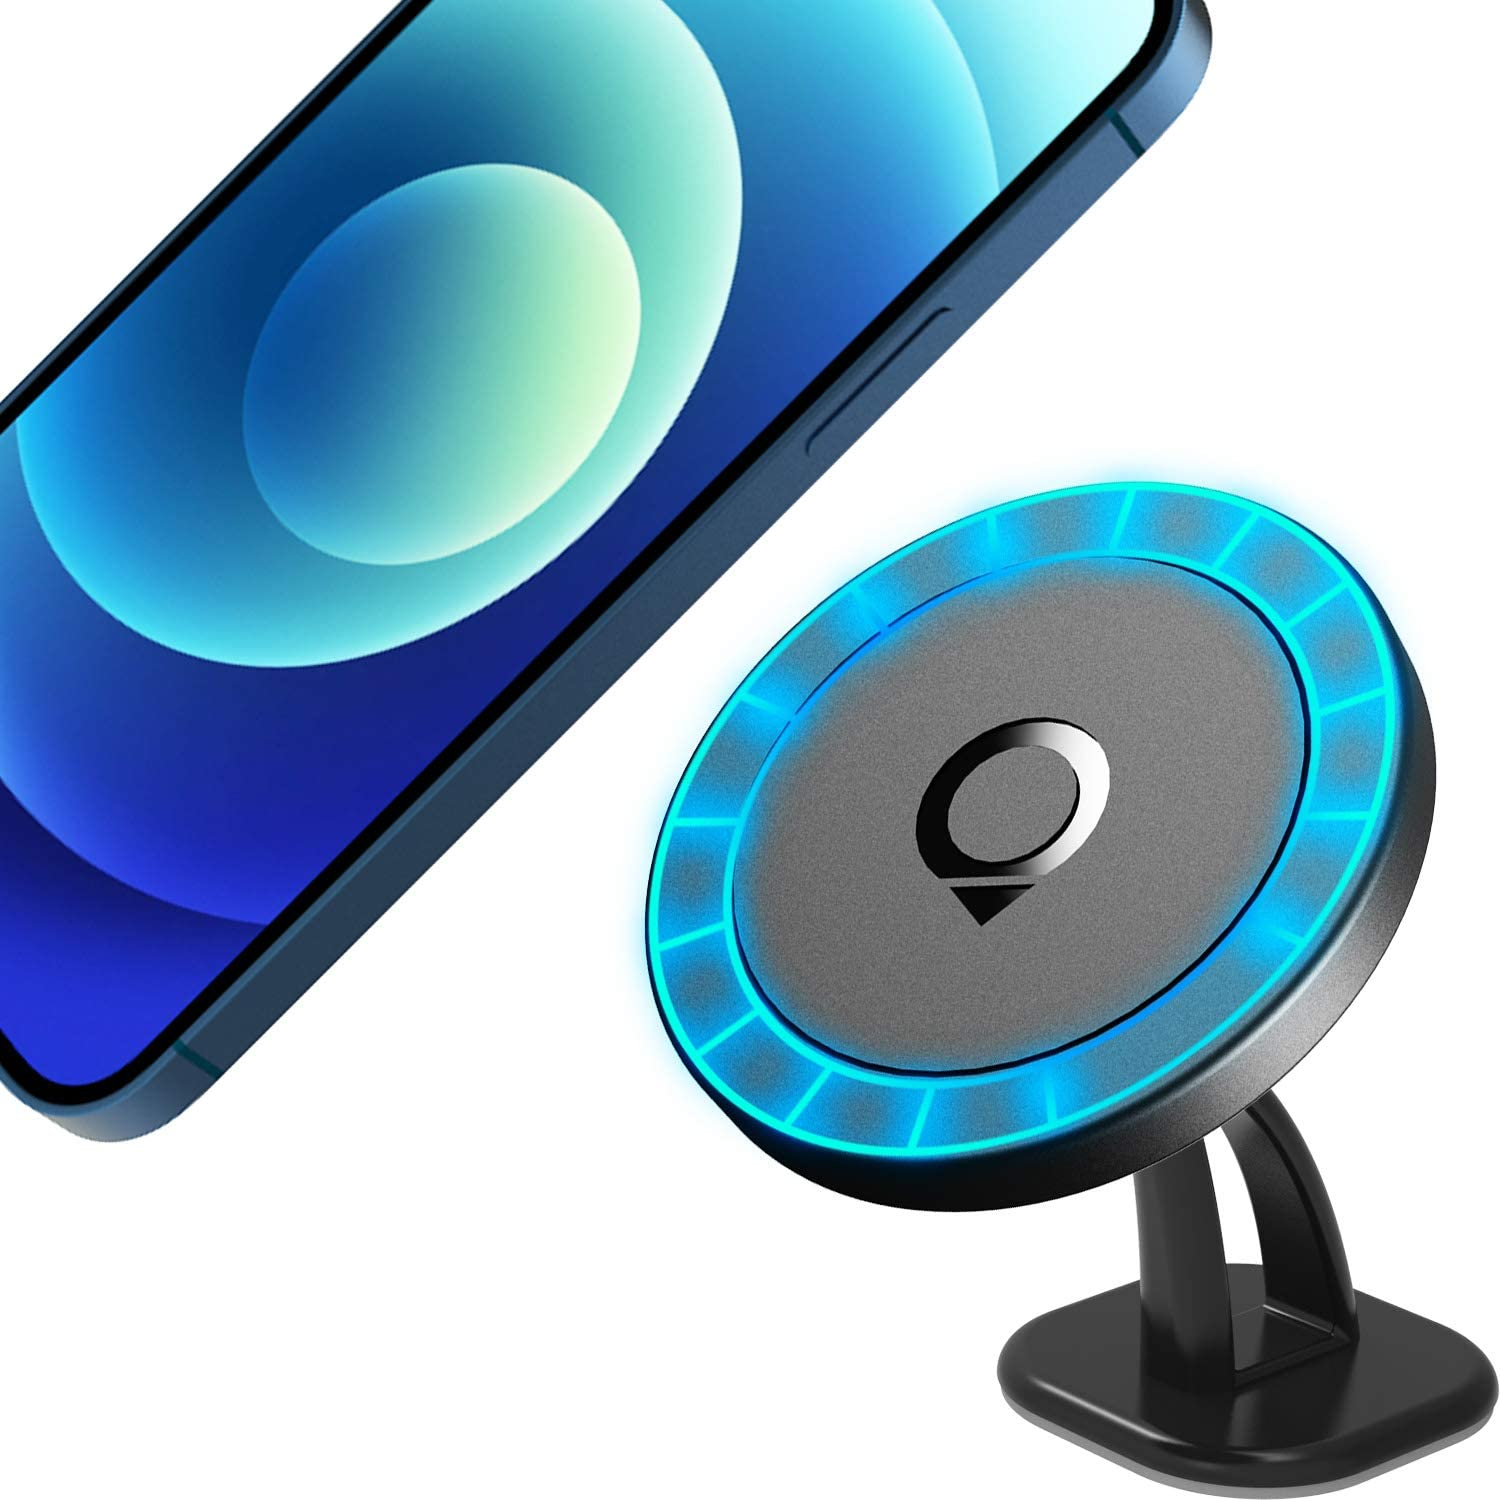 Quarble Magnetic Dashboard Car Mount Compatible with MagSafe Case and iPhone 12 Pro Max Mini, 360° Adjustable Phone Holder No Metal Plate Needed 2021 All New